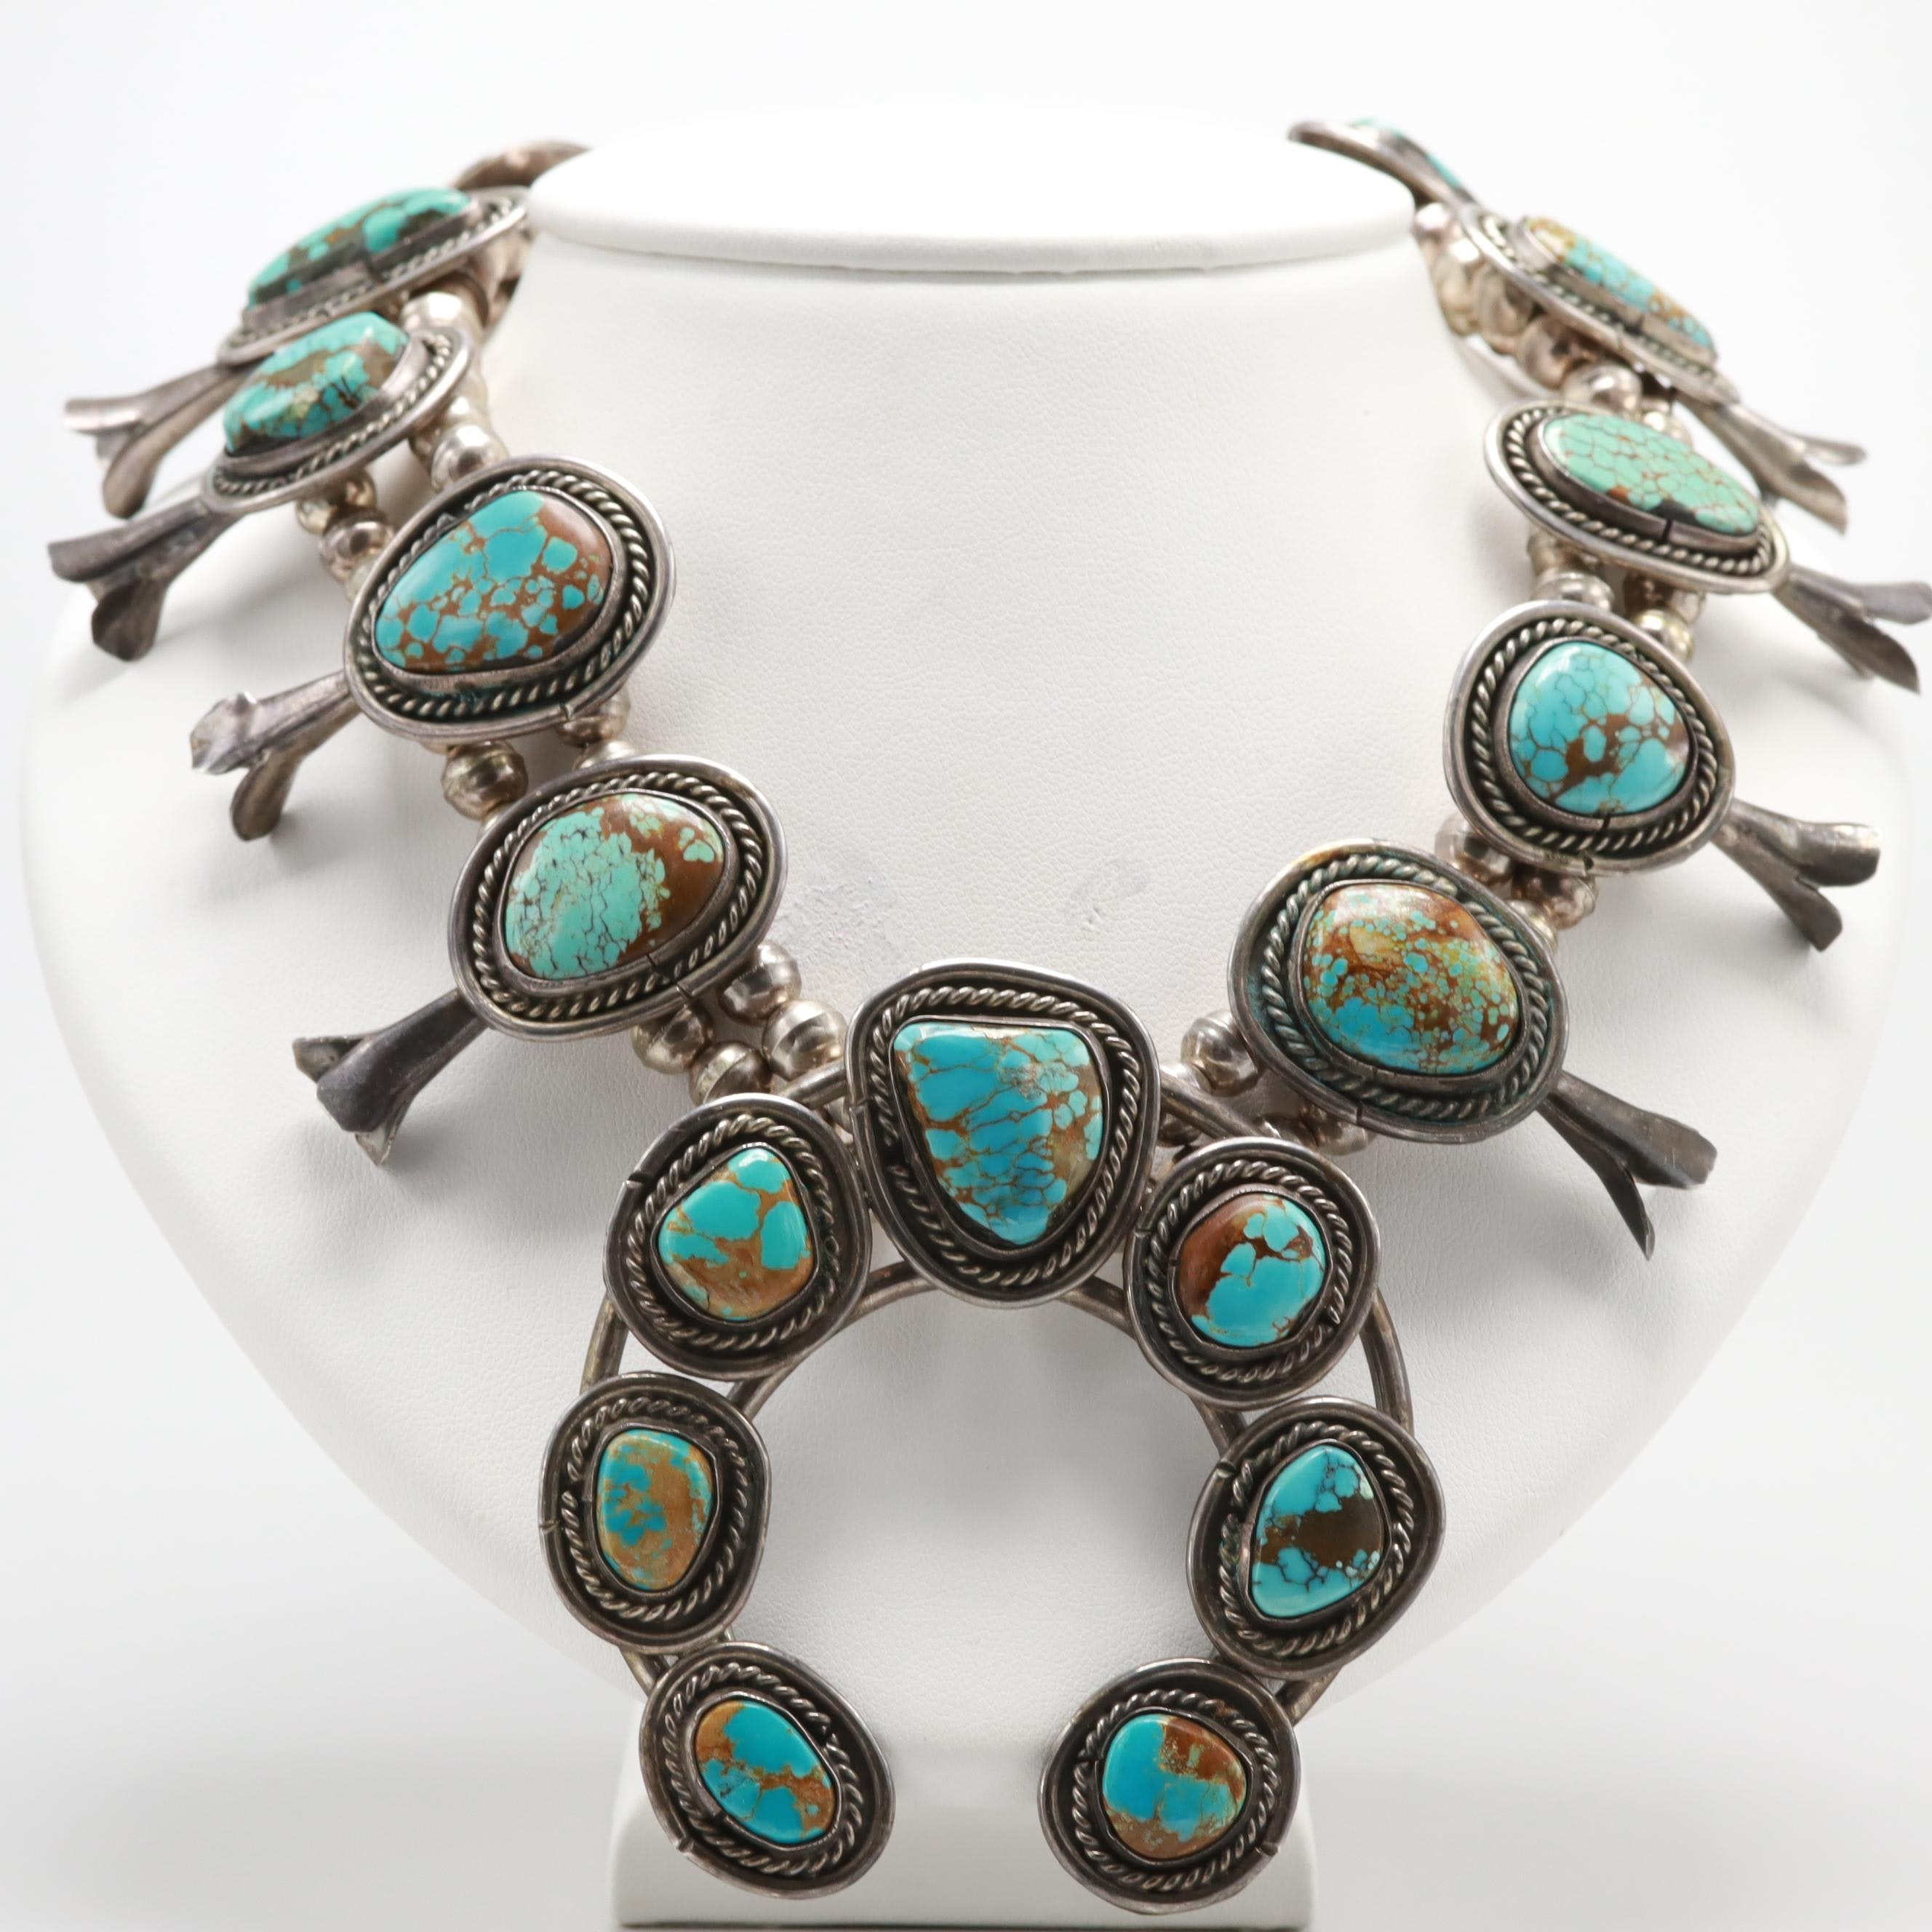 Southwestern Style 900 Silver Turquoise Necklace